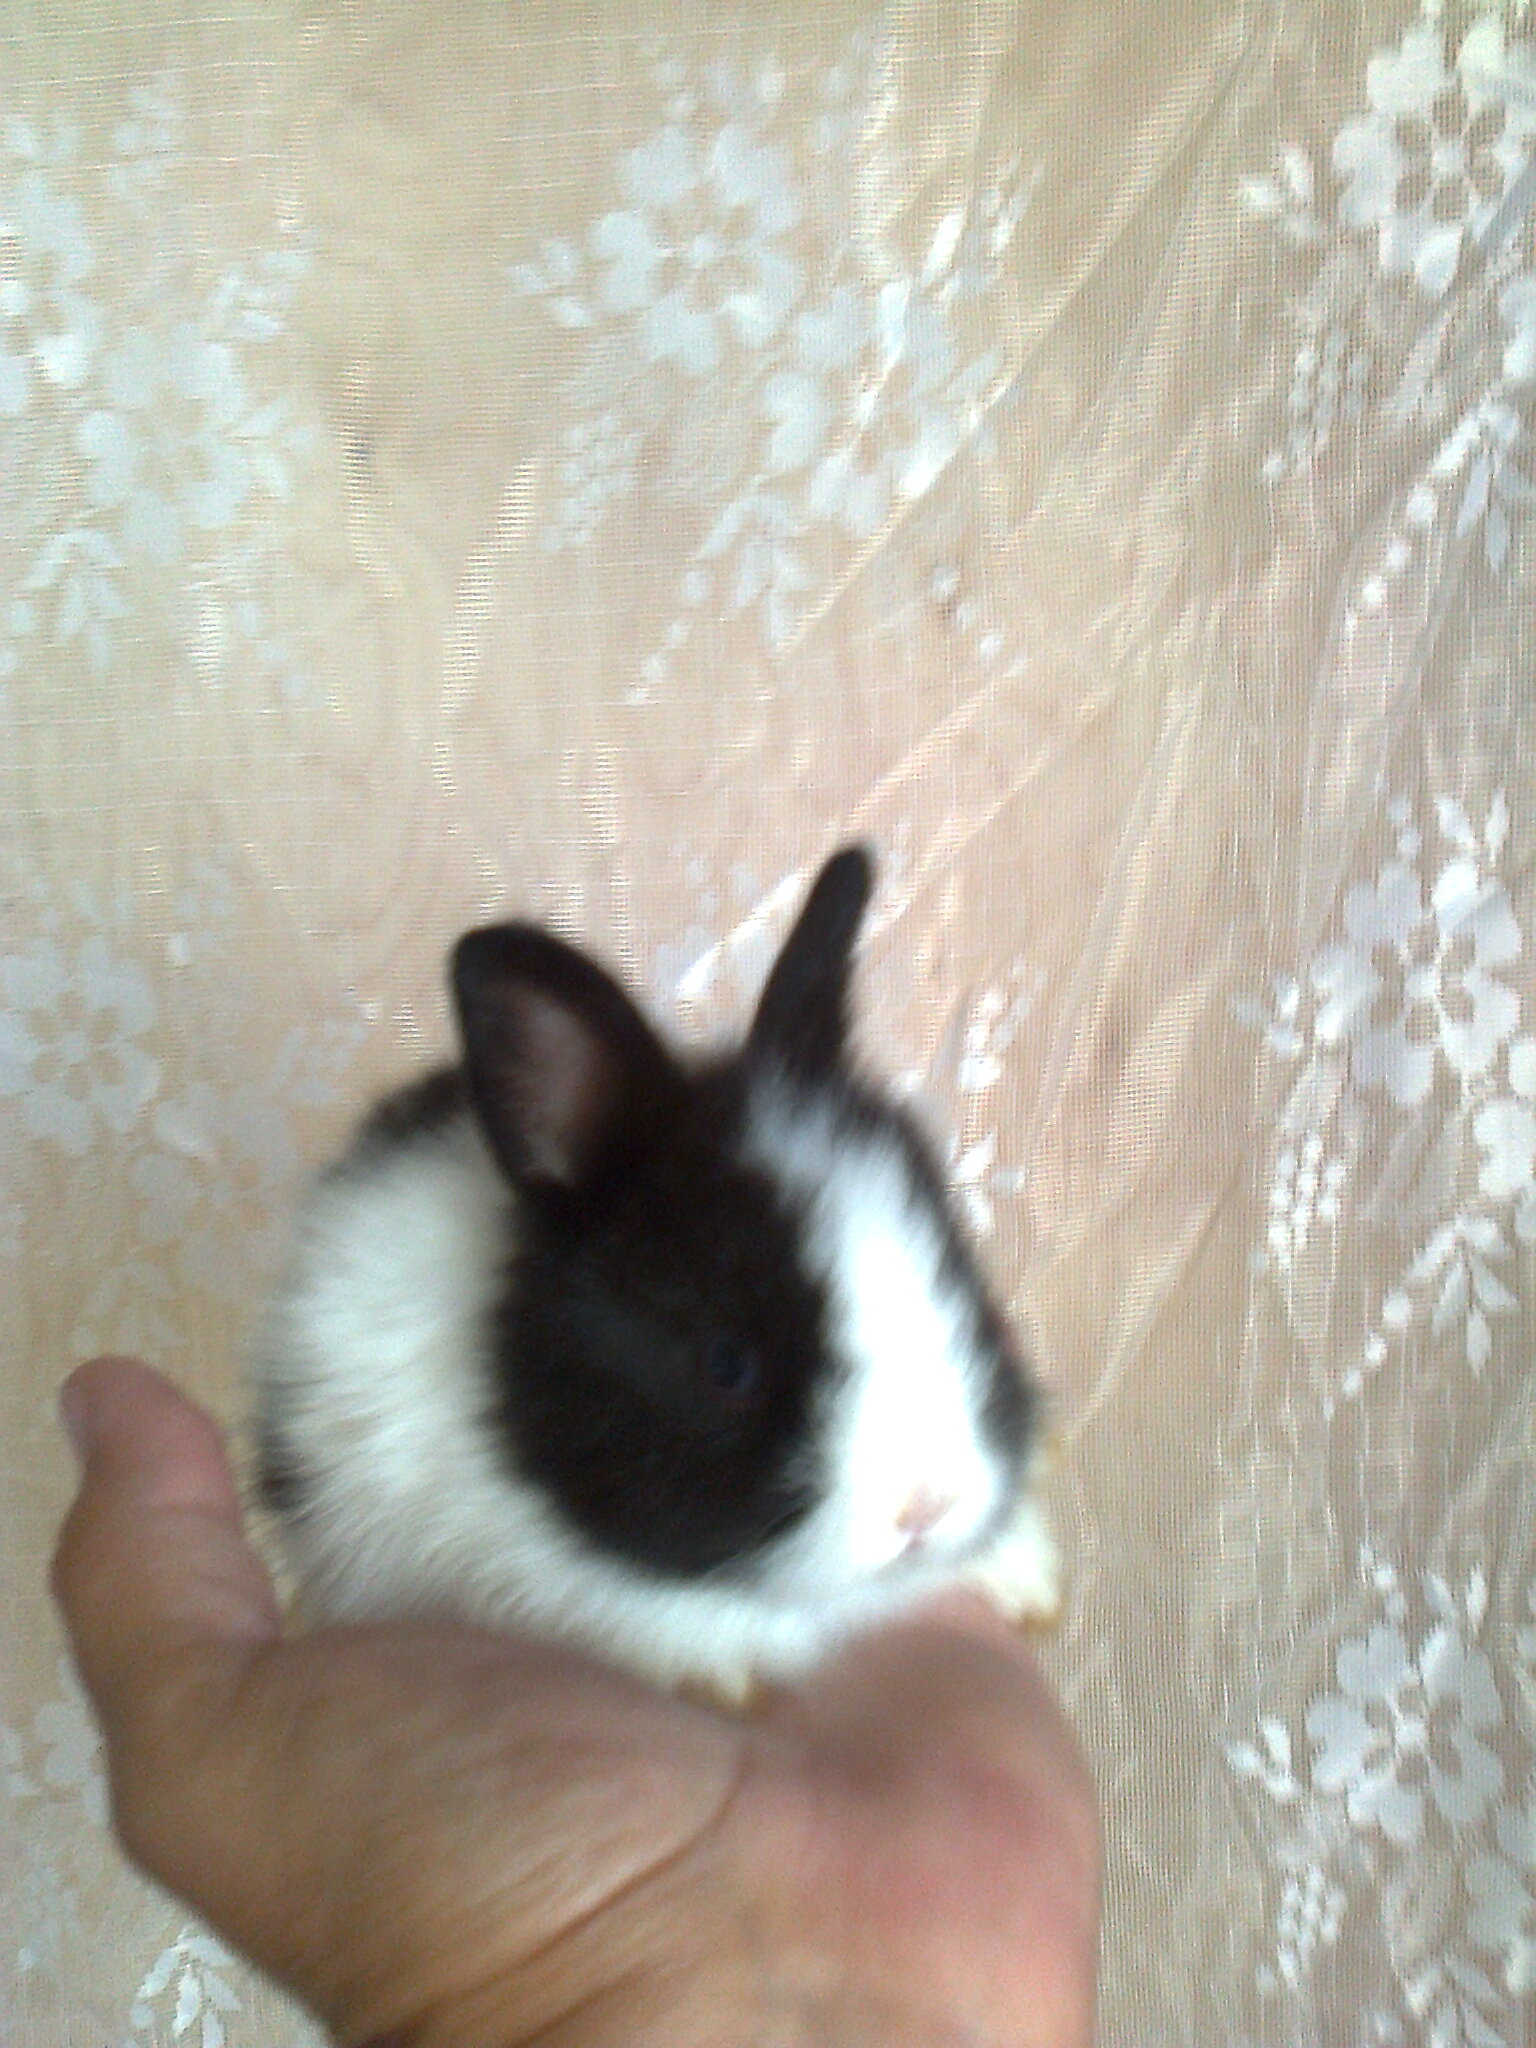 a dwarf rabbit. shipping. Lemming